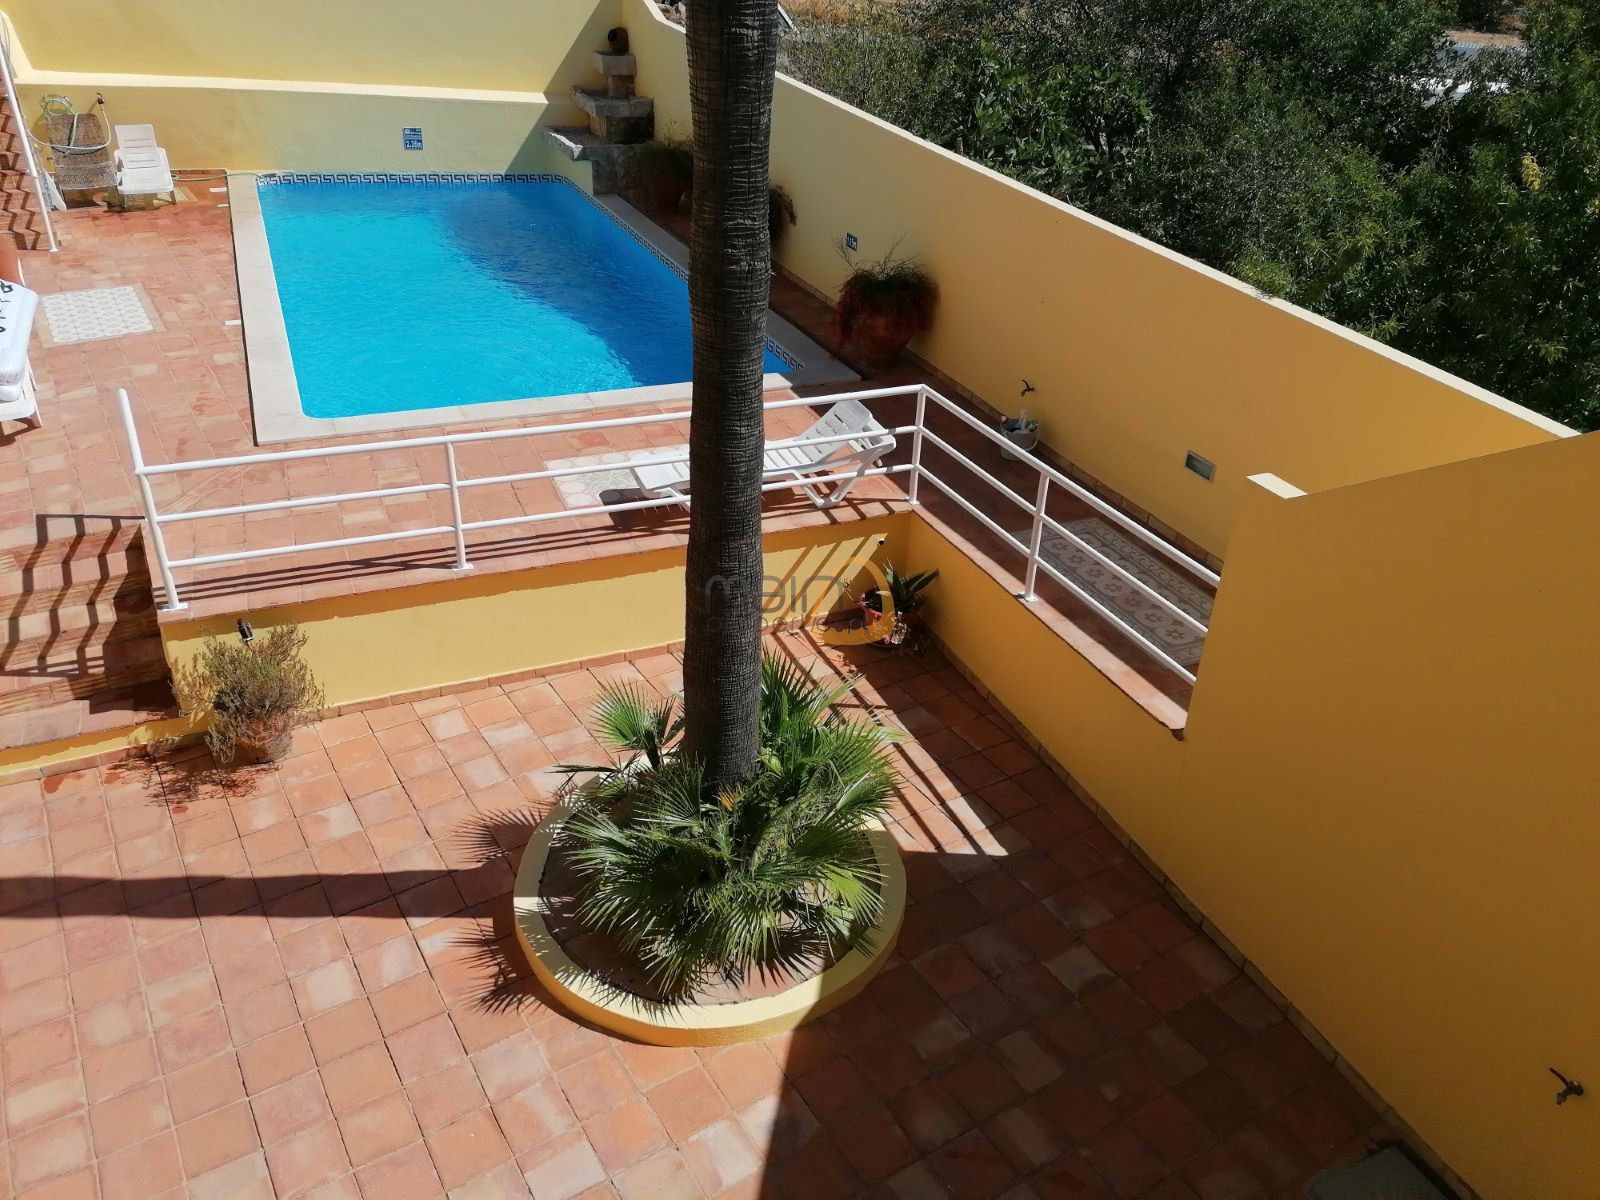 1 bedroom apartment with pool in center of Boliqueime